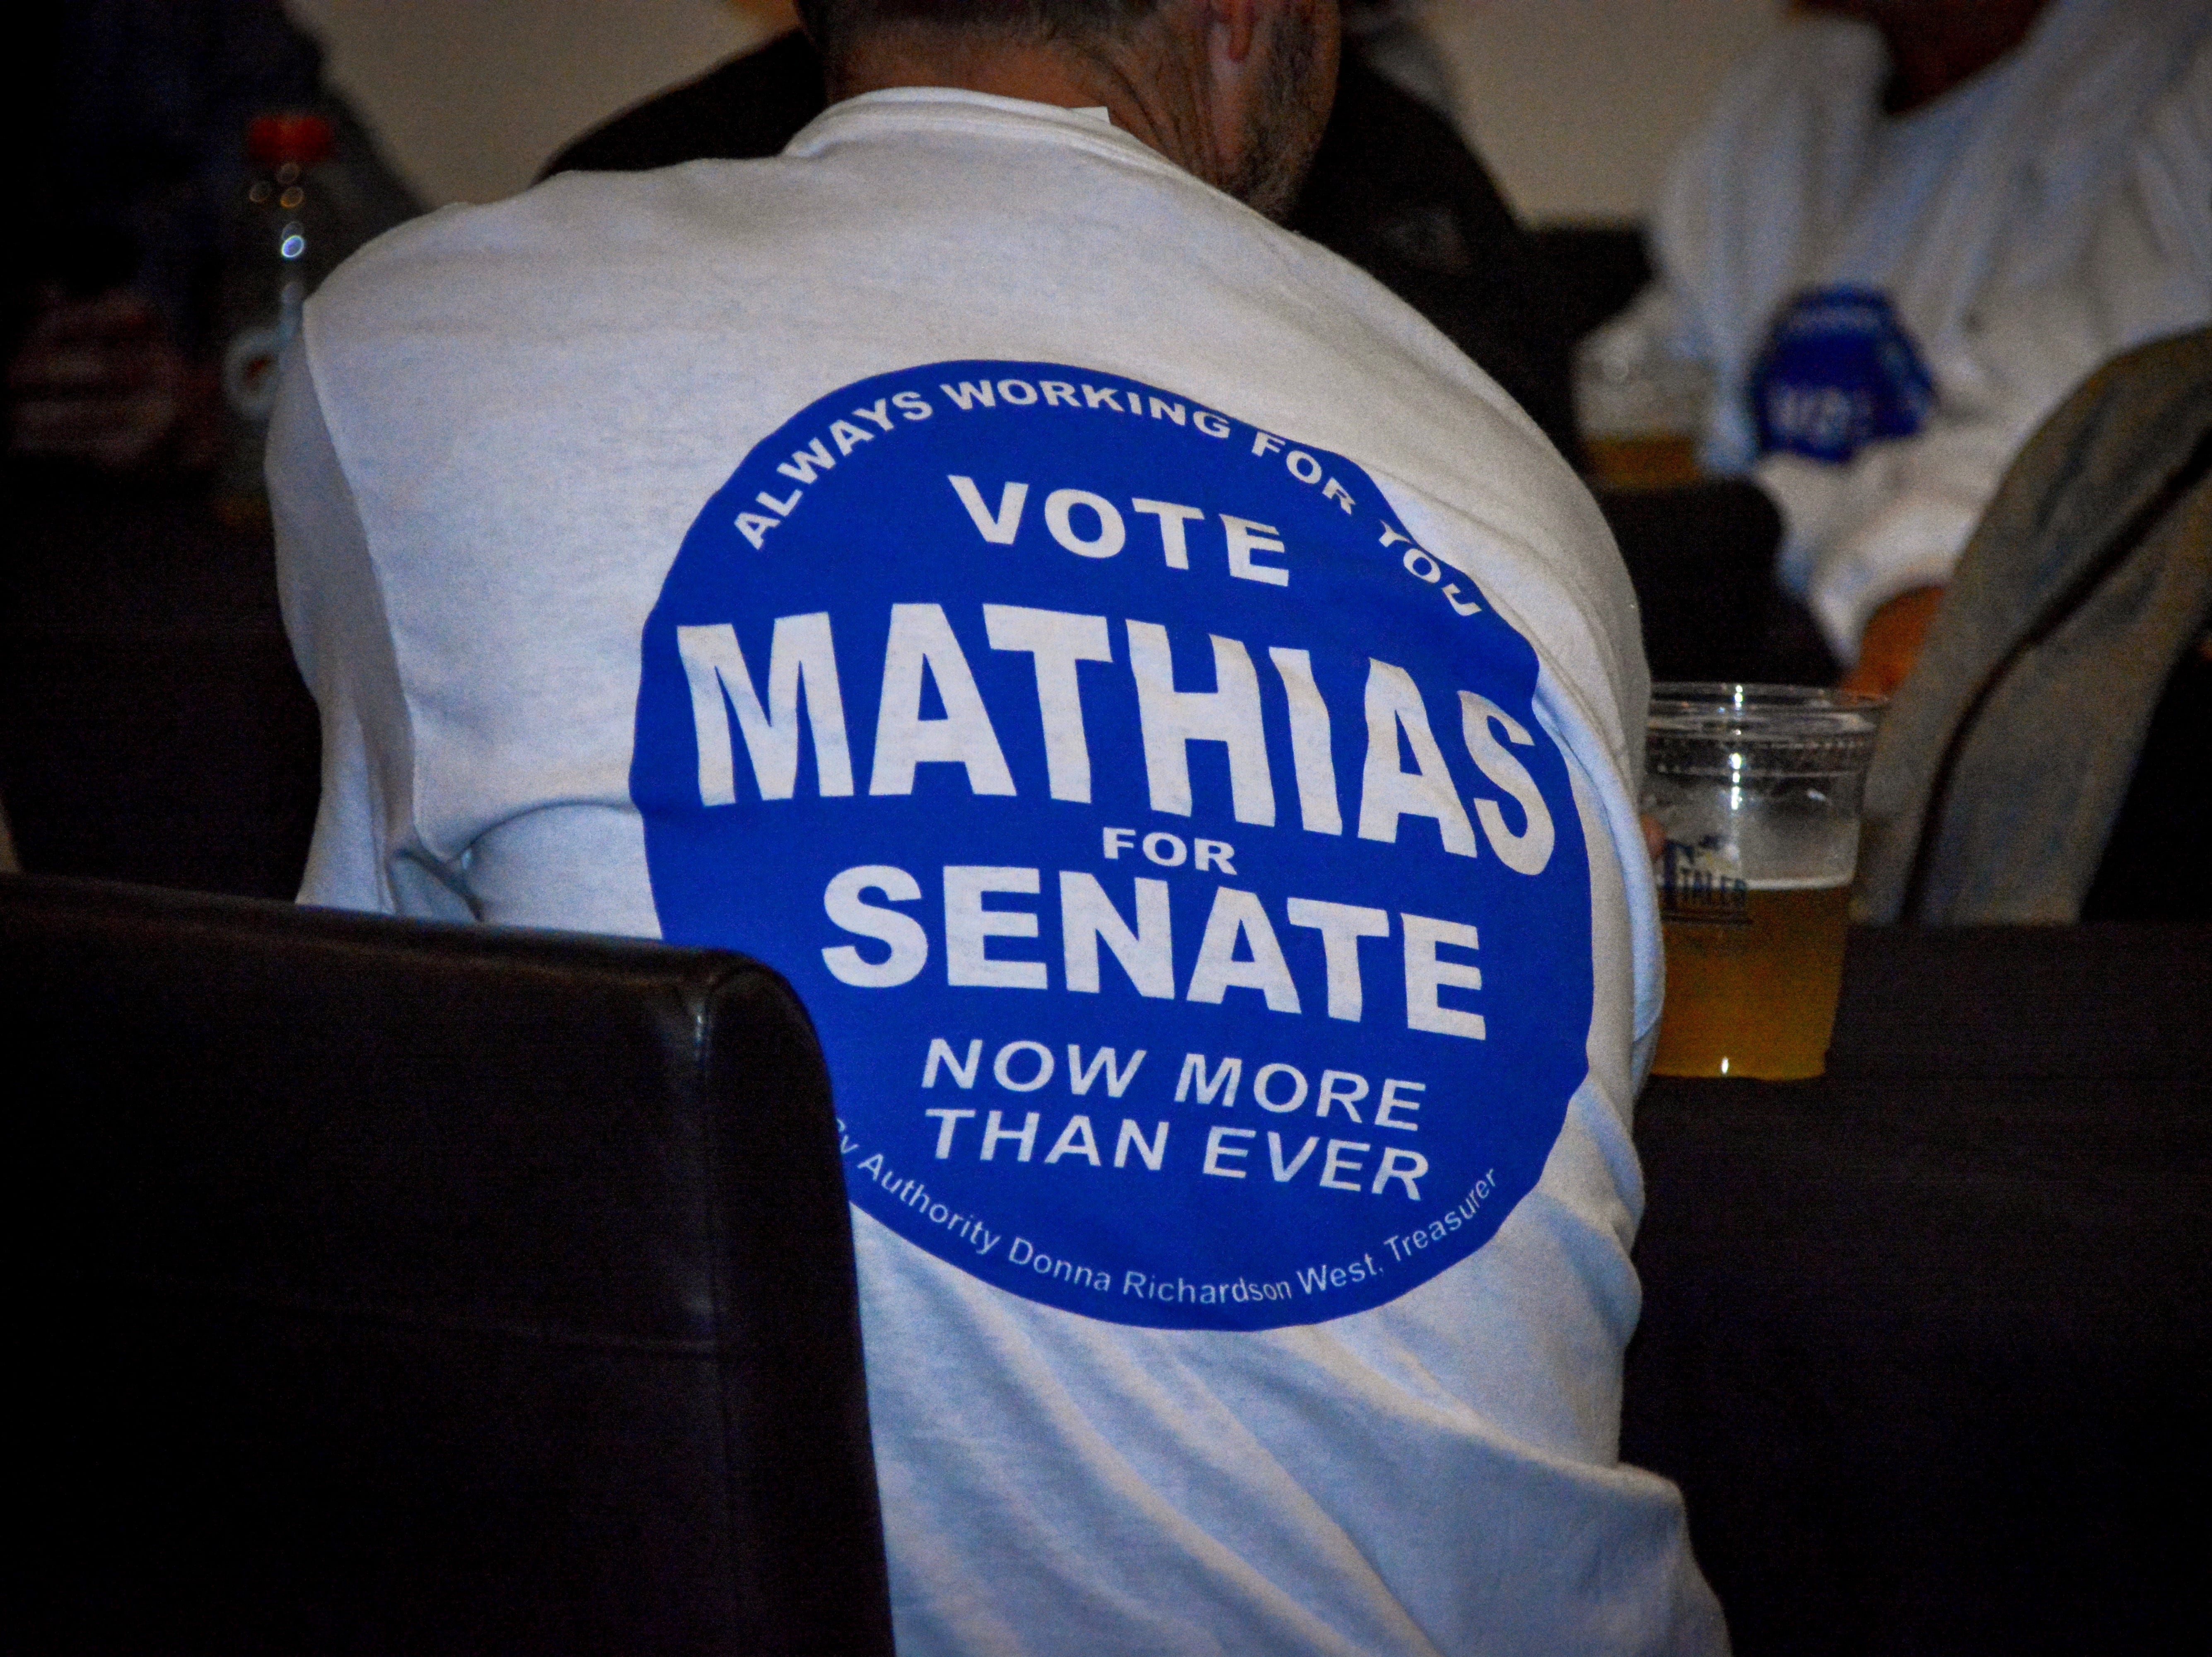 Supporters for Sen. Jim Mathias wear campaign gear at Tall Tales Brewing Company in Parsonsburg for election night on Tuesday, Nov. 6, 2018.